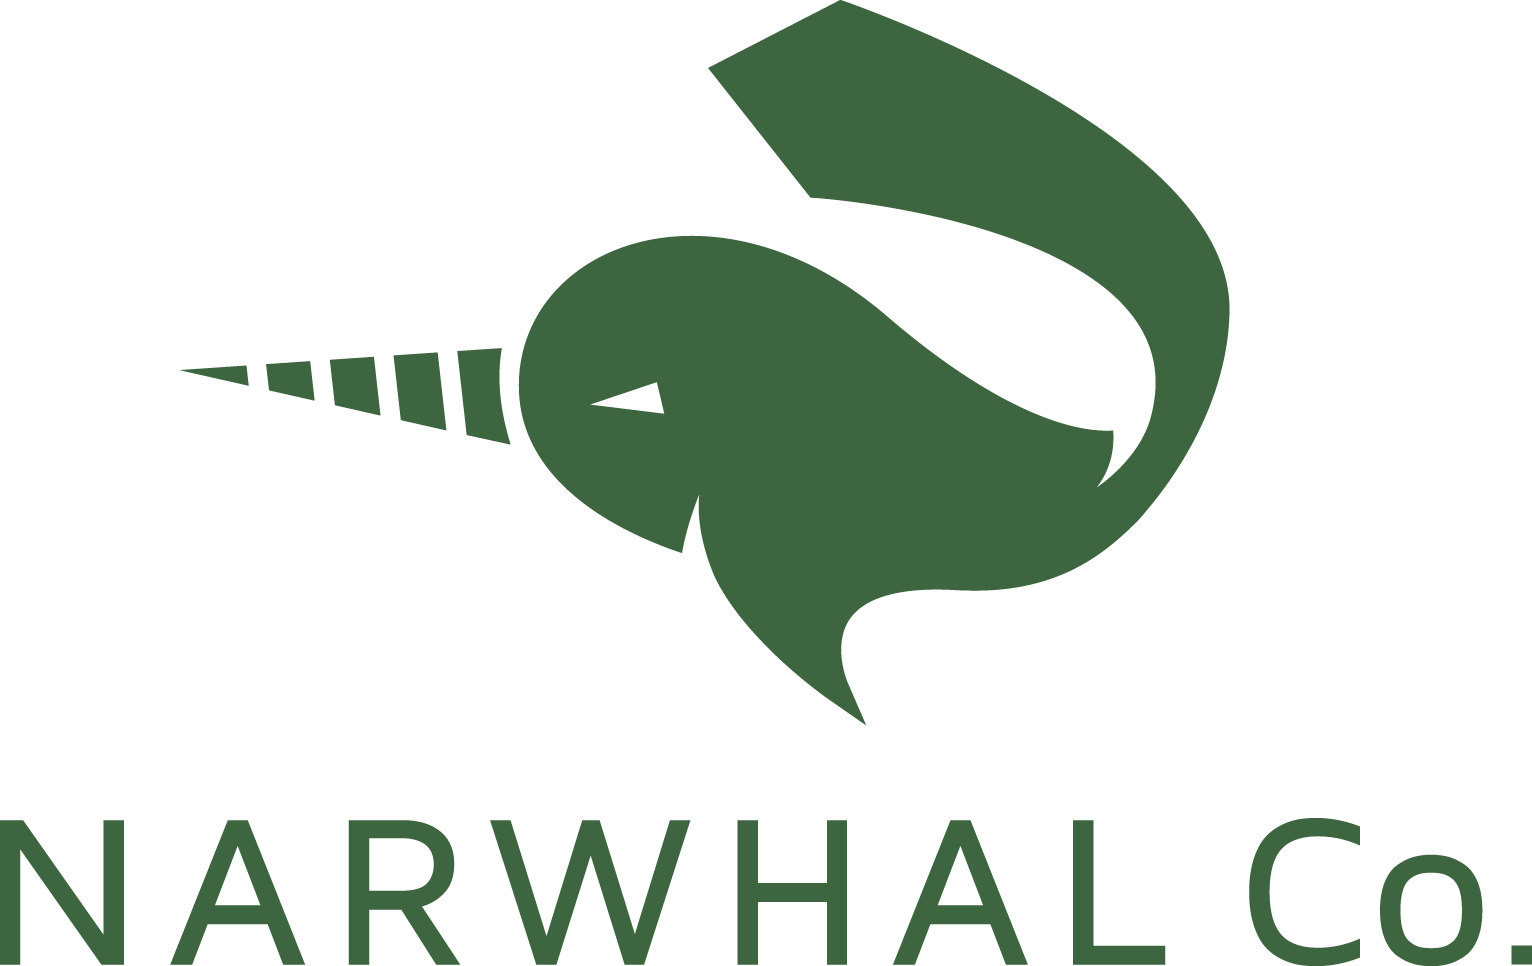 NarwhalCo